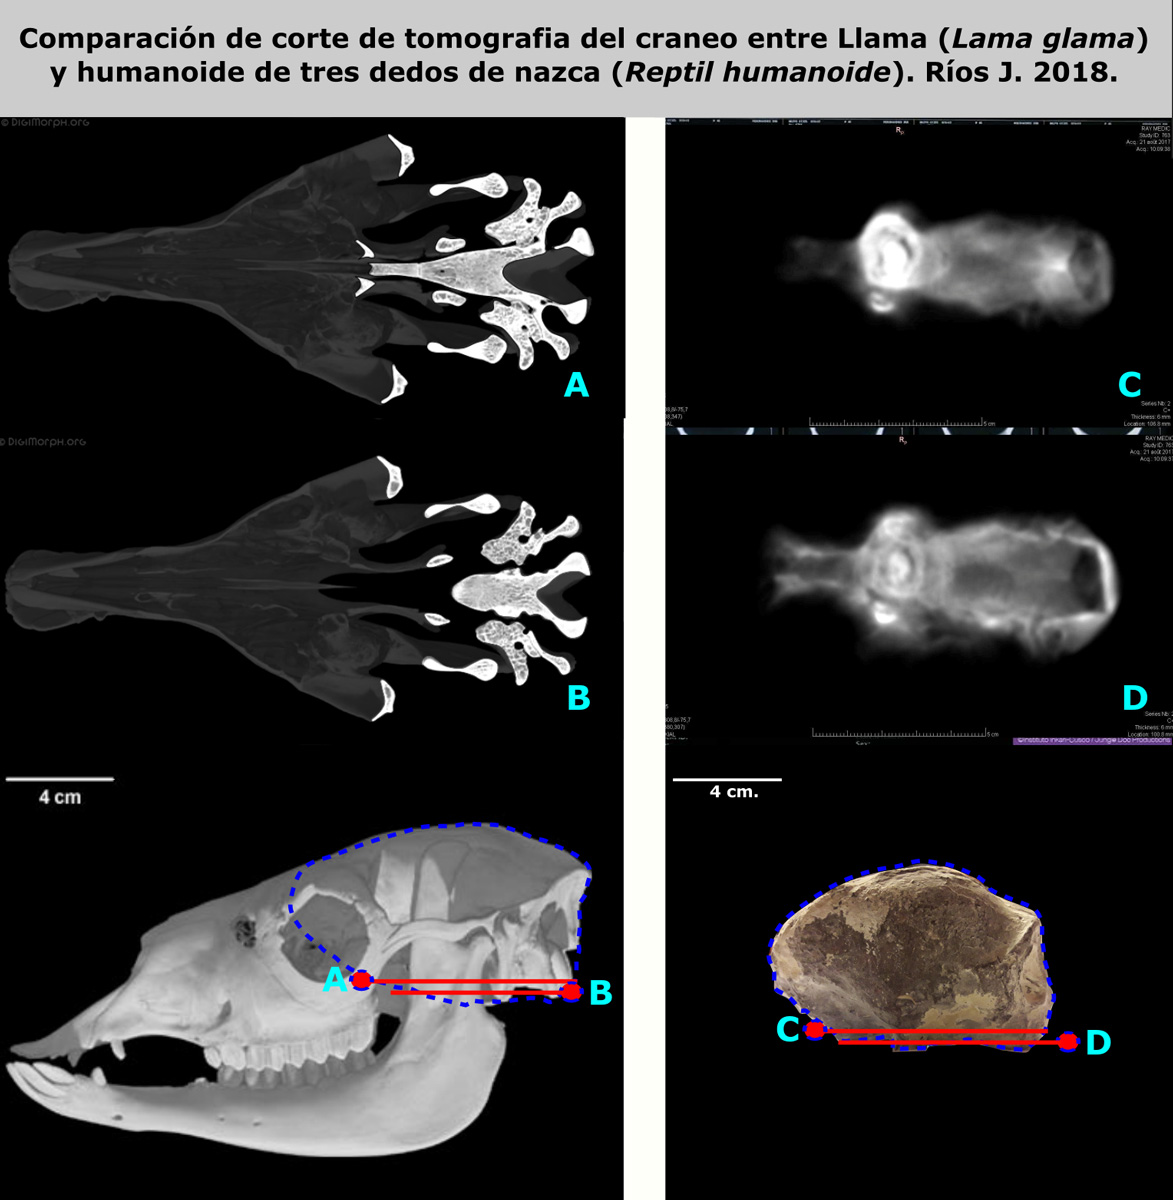 Comparison of tomographic sections of skulls (scanner images) between the Lama (Lama glama) and the three-fingered Nasca humanoid (Humanoid Reptile). Rios J. 2018